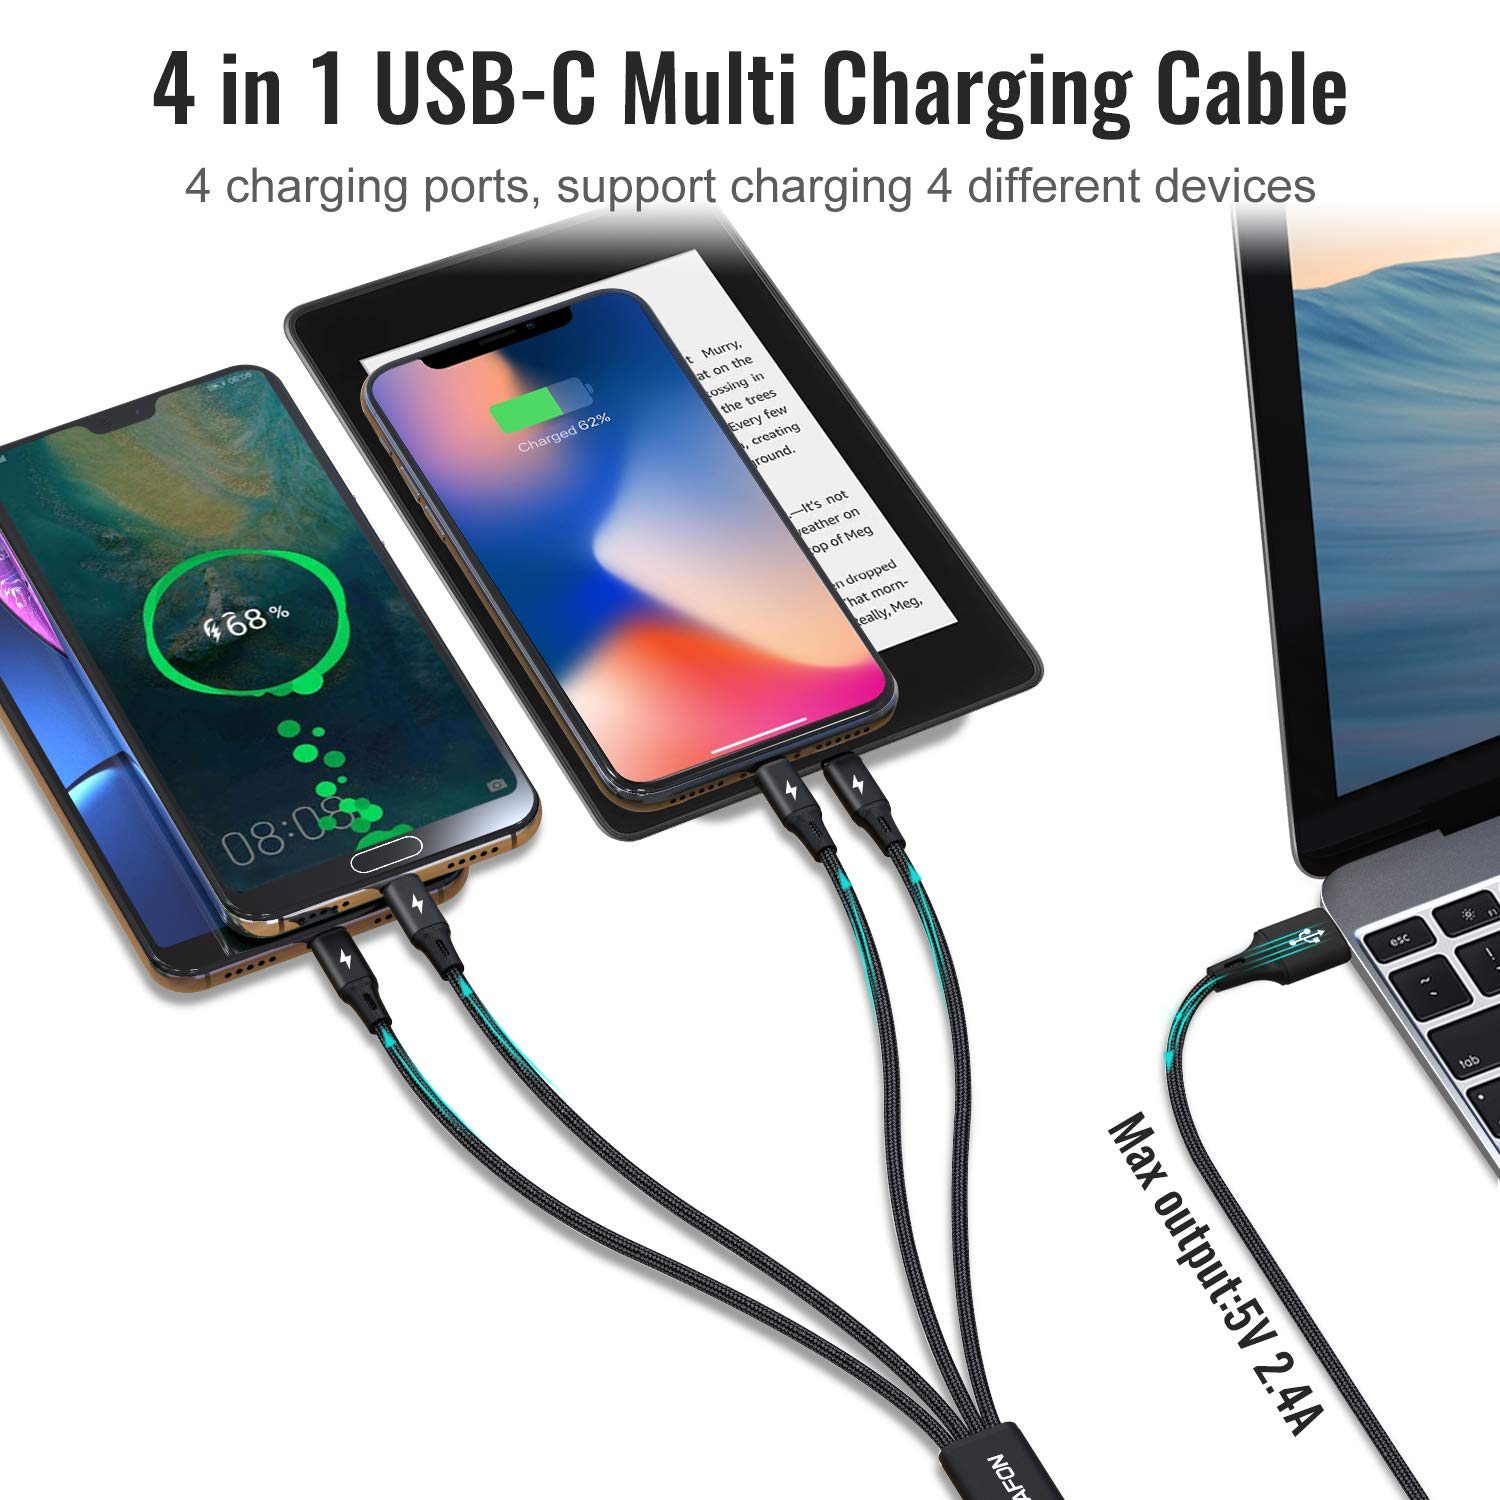 CHAFON 2 Pack USB A to Multi Charging Cable,4 in 1 and 6 in 1 Charger Cord with Micro,USB C//Phone Connectors Compatible with Cell Phones,Camera,Tablets fire,and More-Black